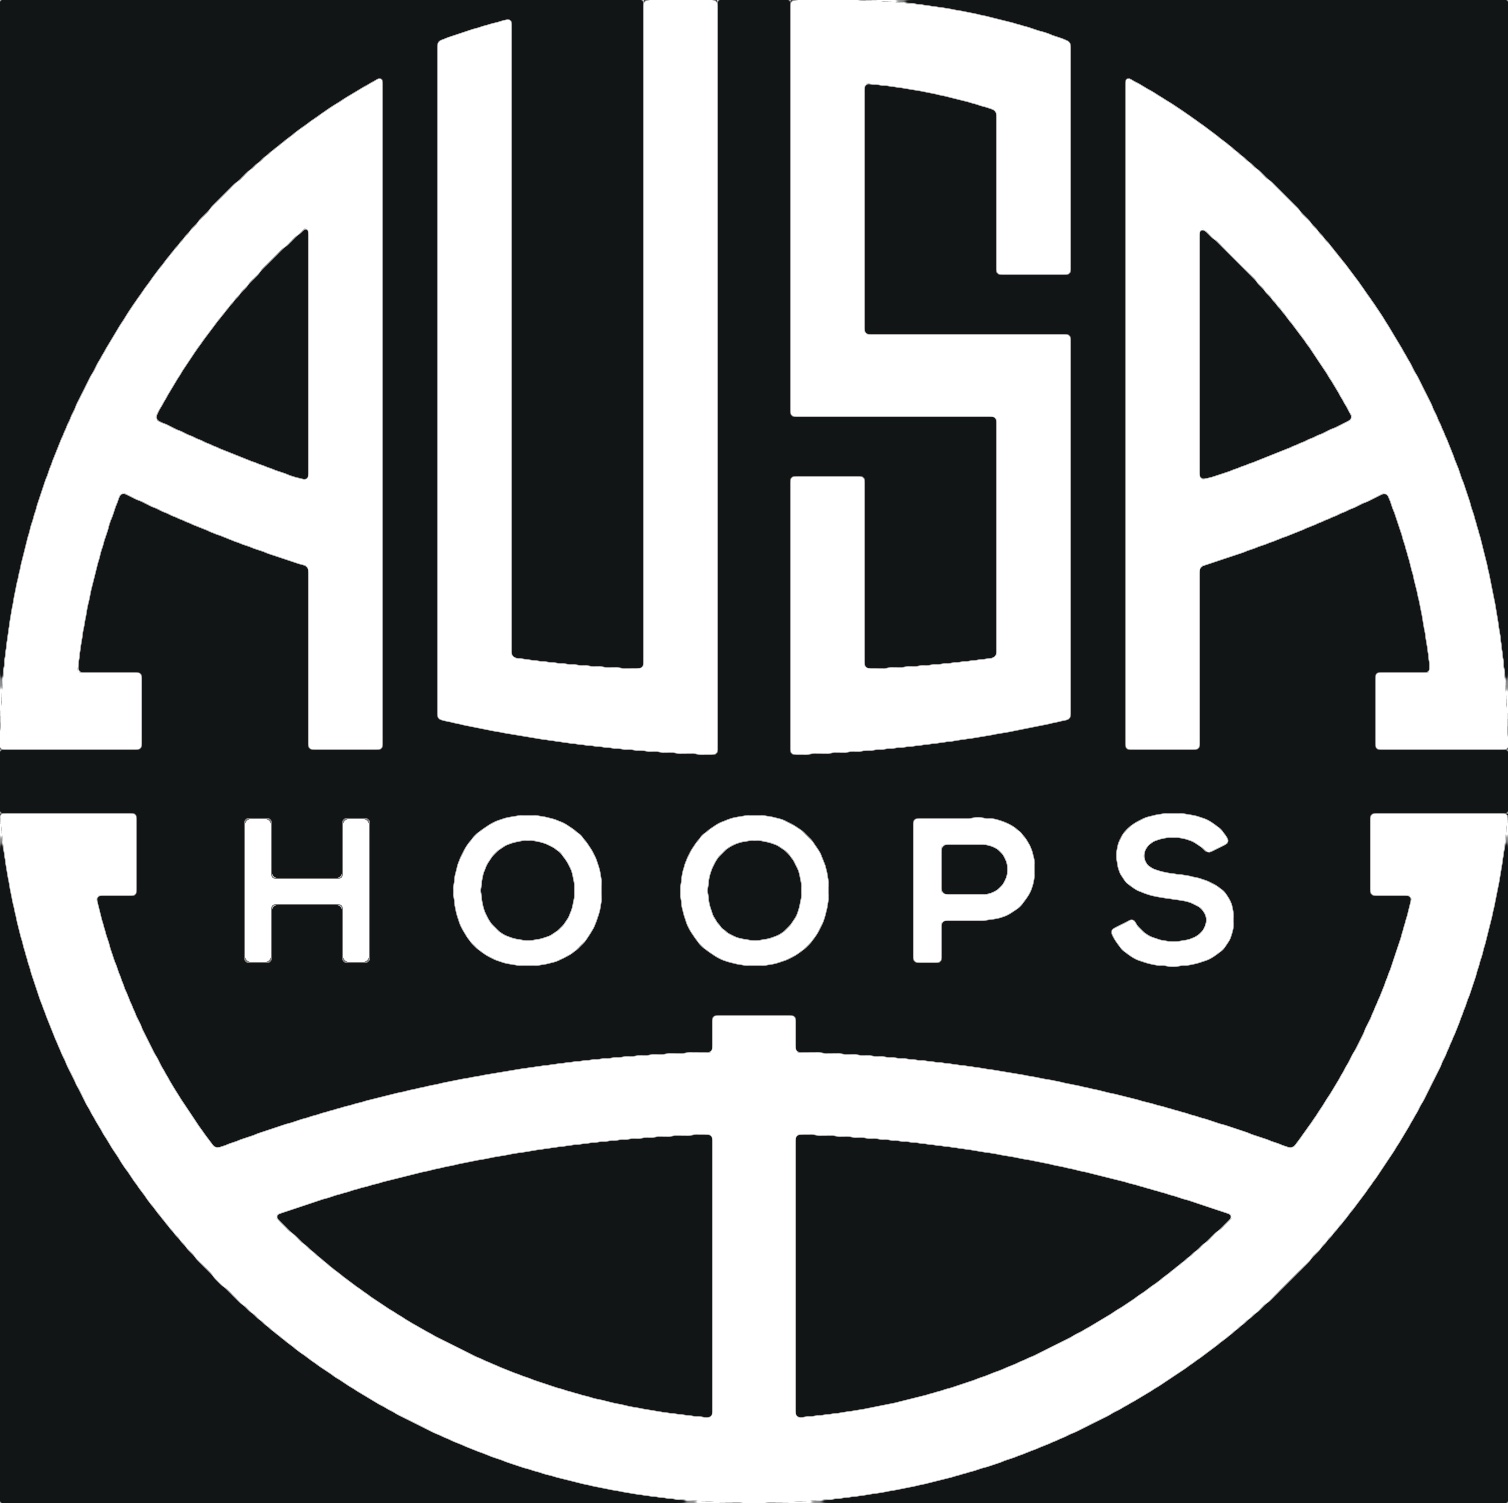 TAKE IT TO THE NEXT LEVEL - AUSA and tempus are flipping the script on elite basketball development in sydney learn more here.